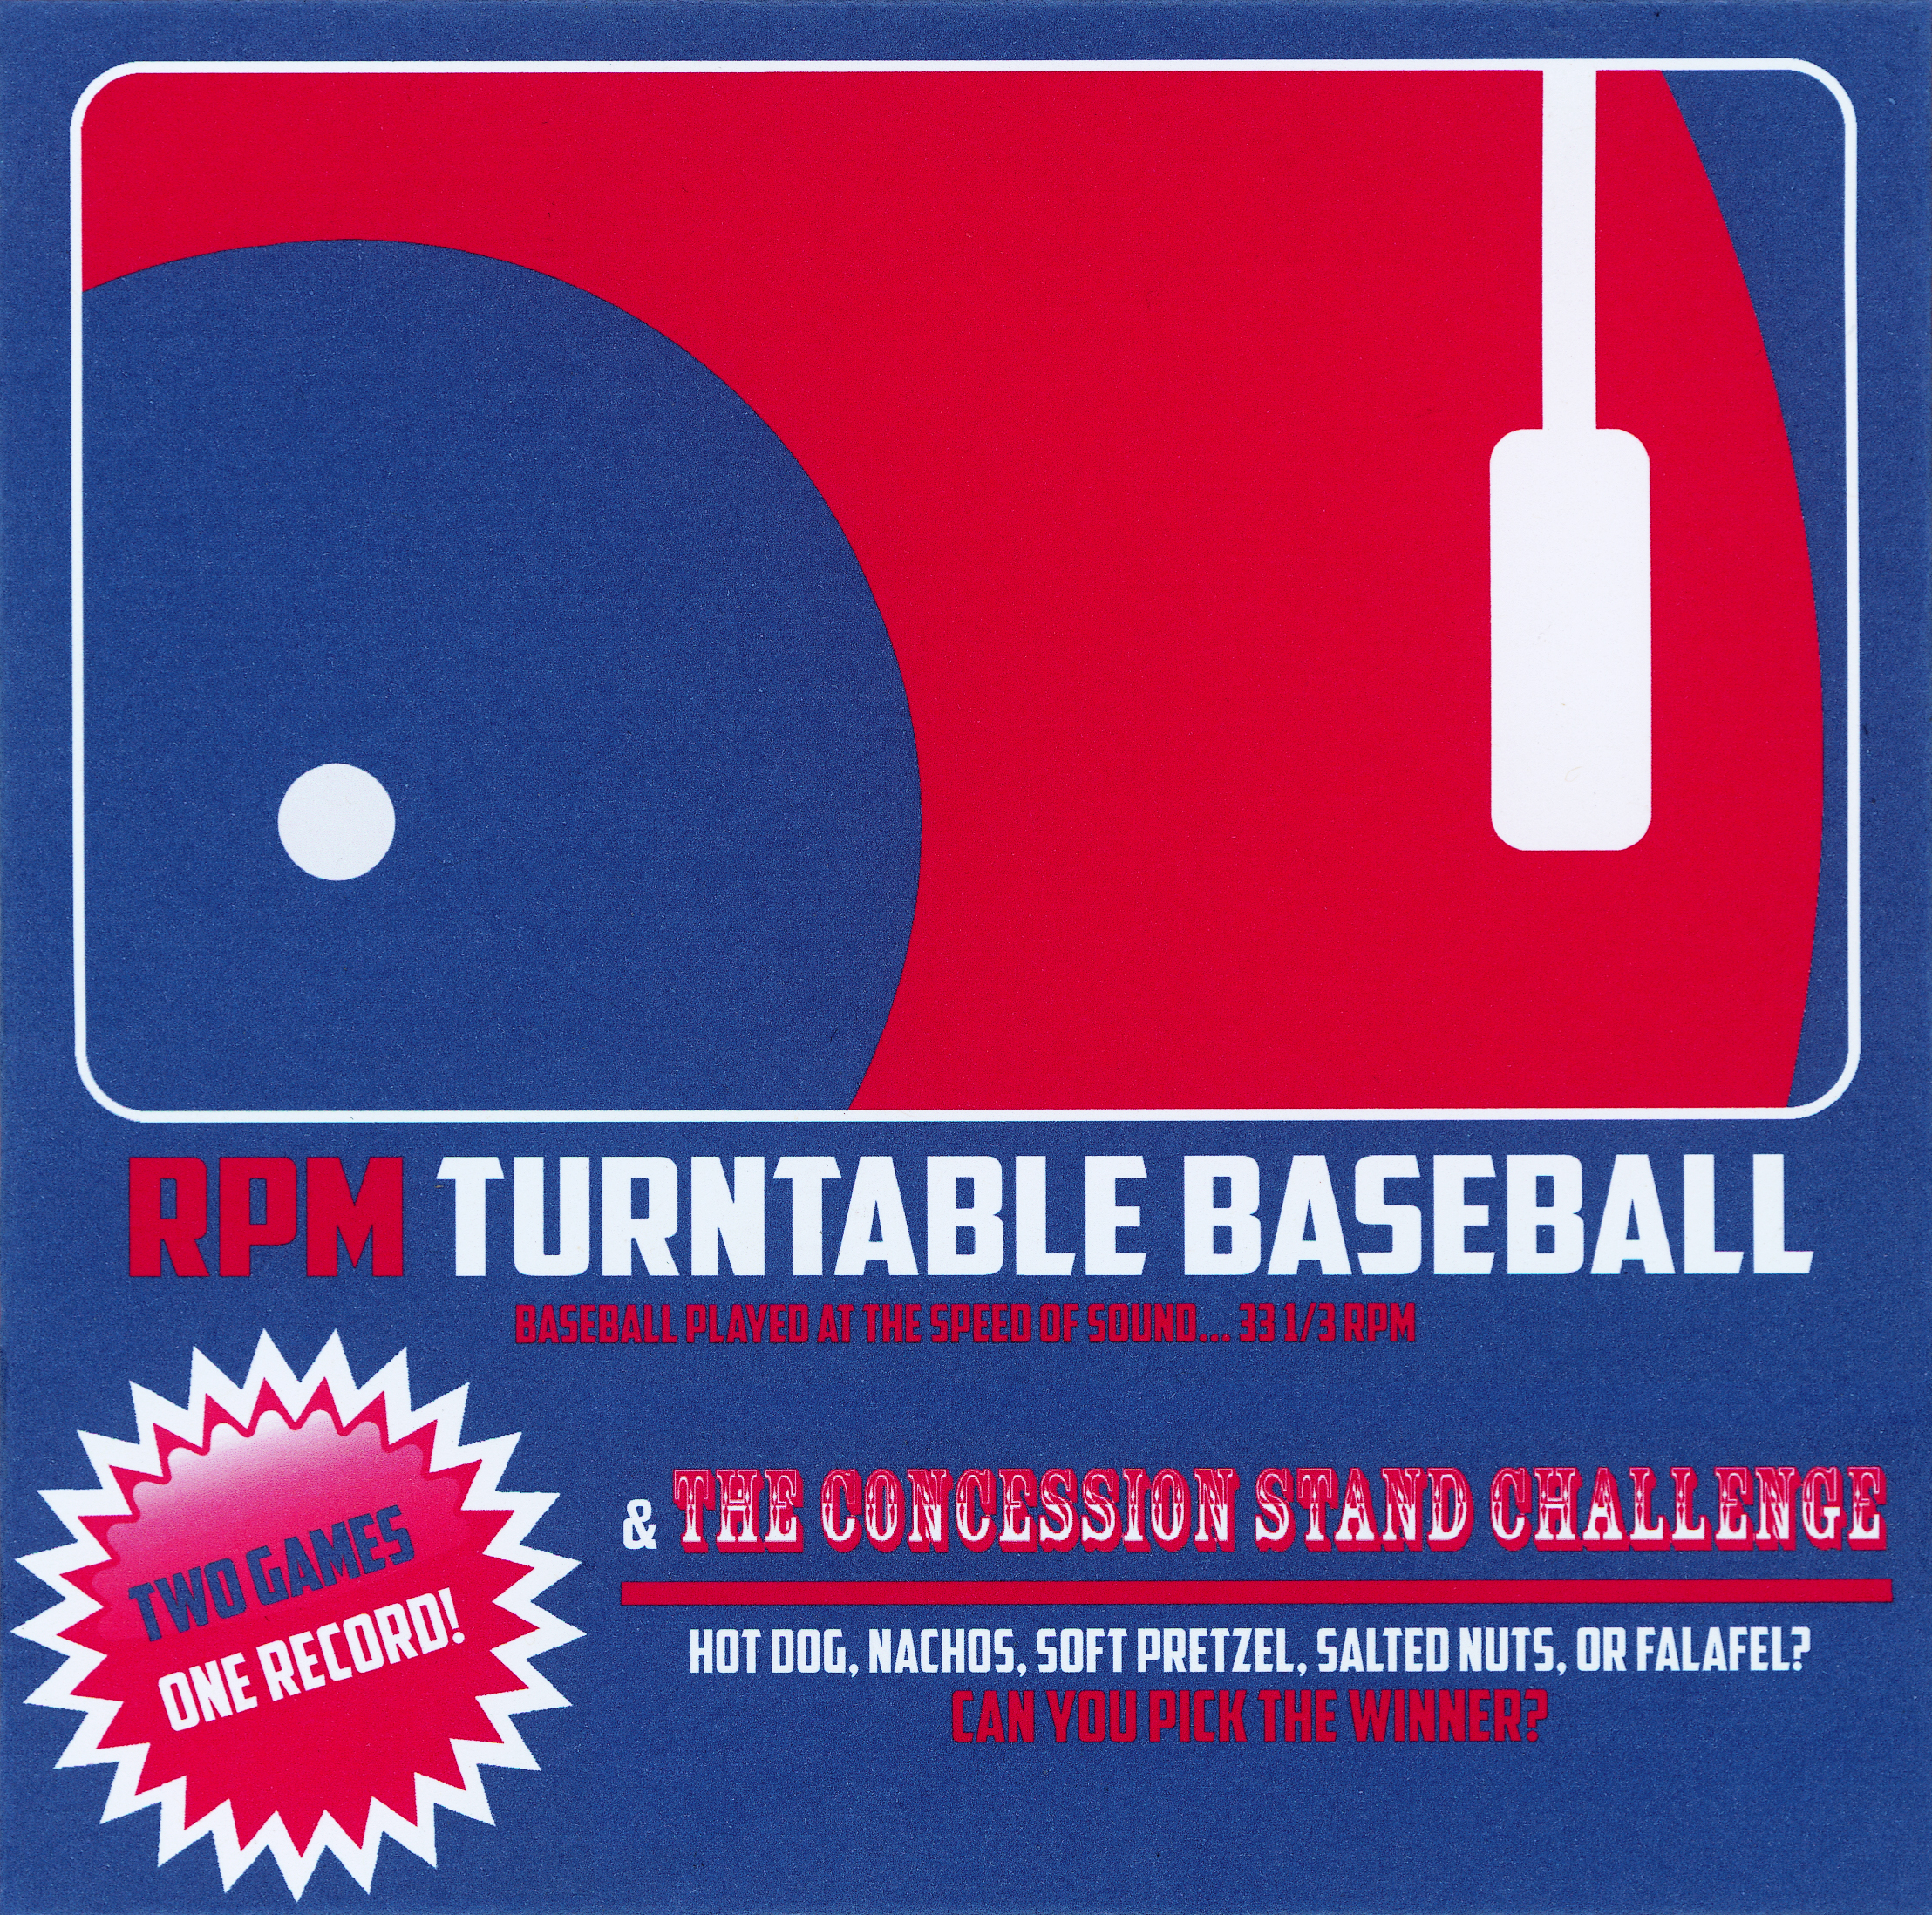 - Two Games, One Record (A Two-Player Game Played at 33 1/3 RPM)